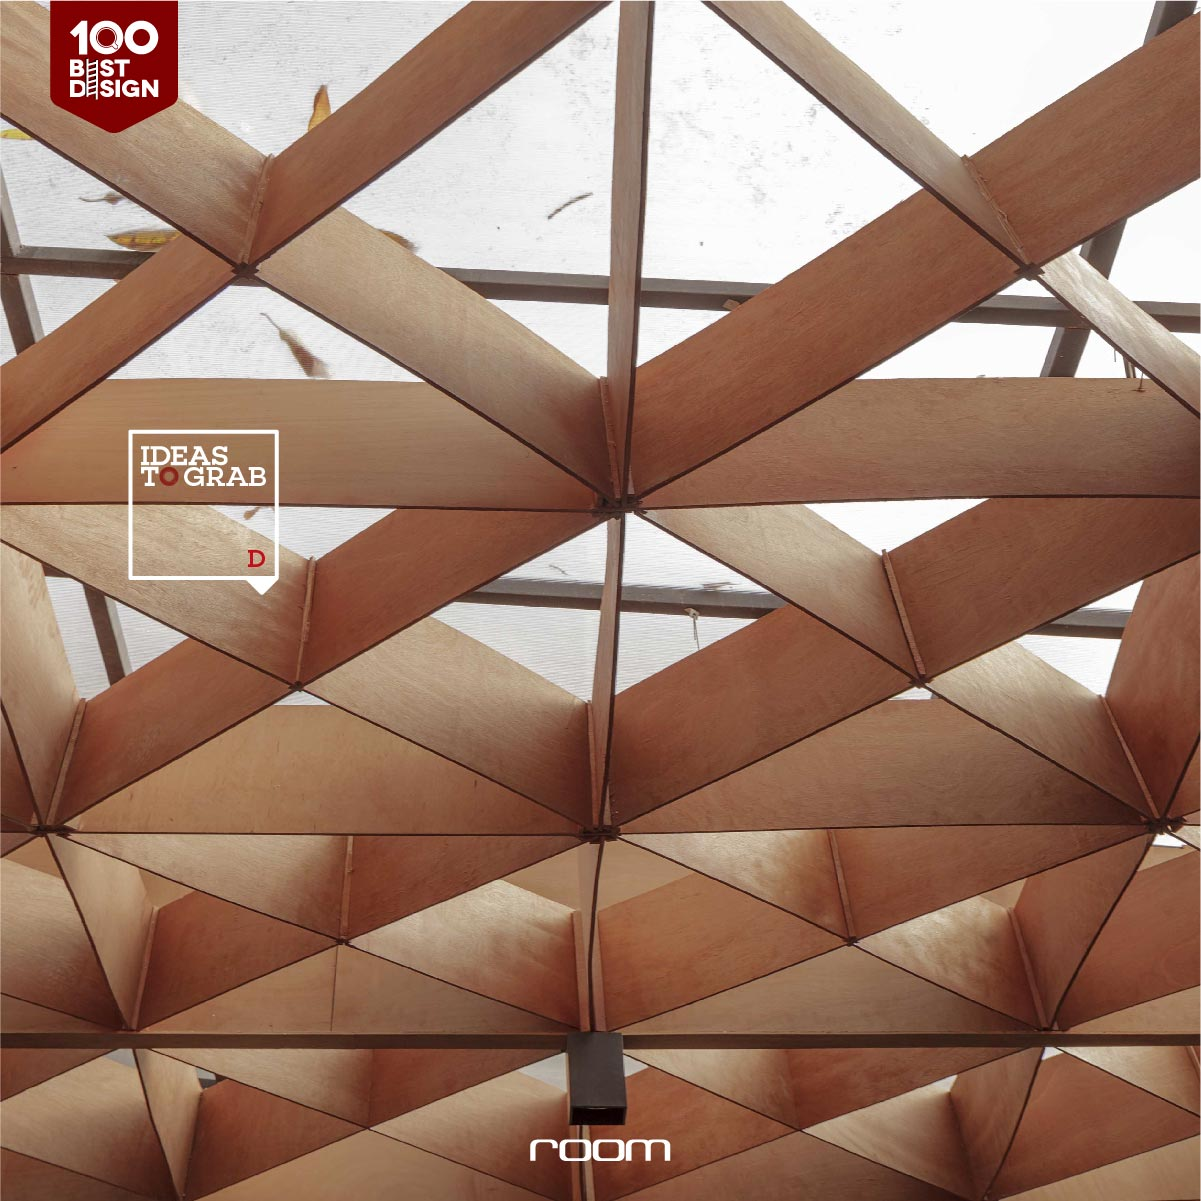 Ceiling decorate by wood idea